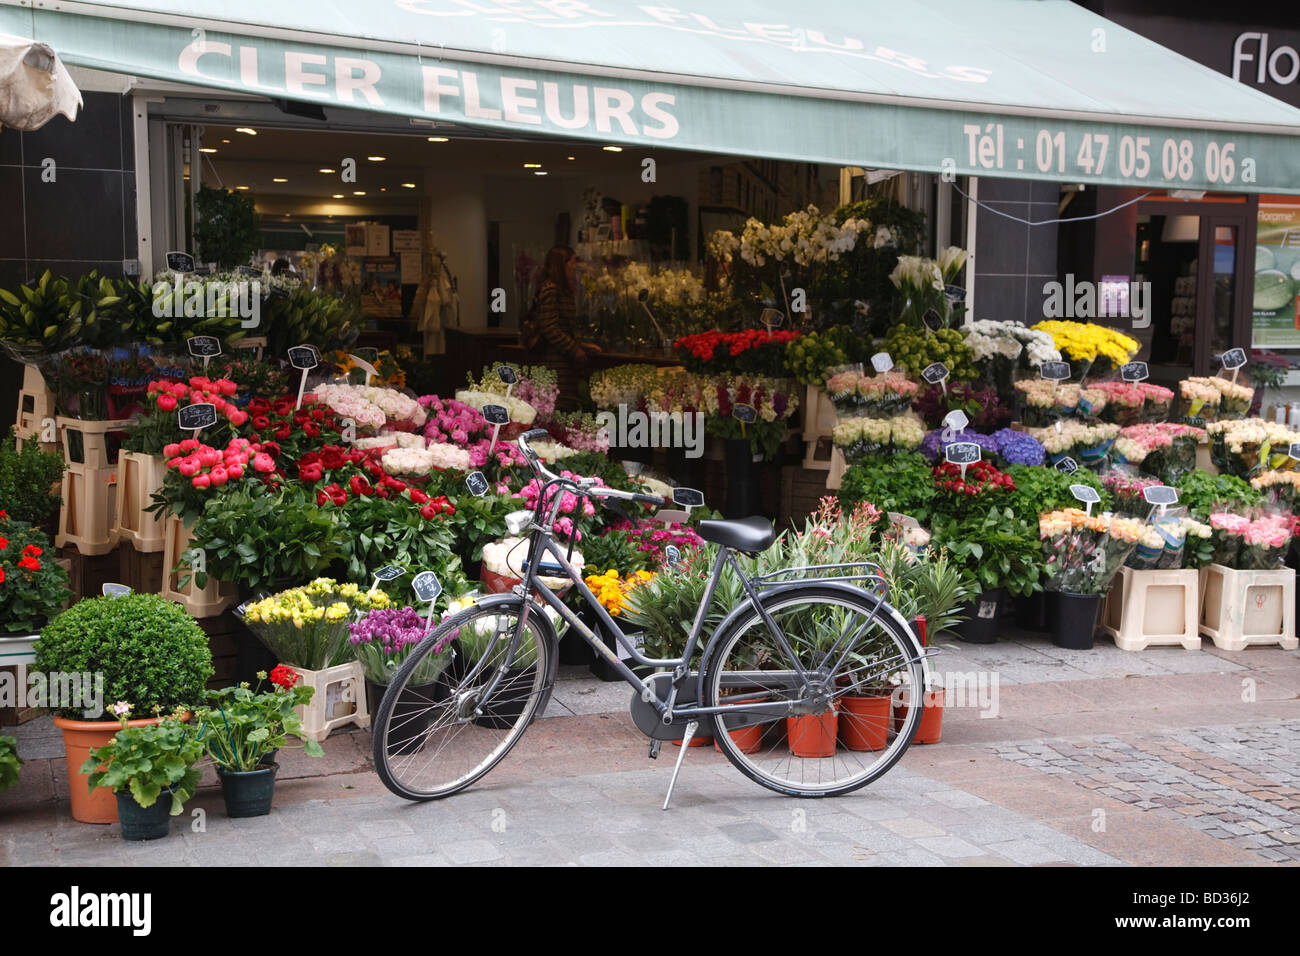 A traditional bicycle stands outside a flower stall on Rue Cler in Paris, France Stock Photo